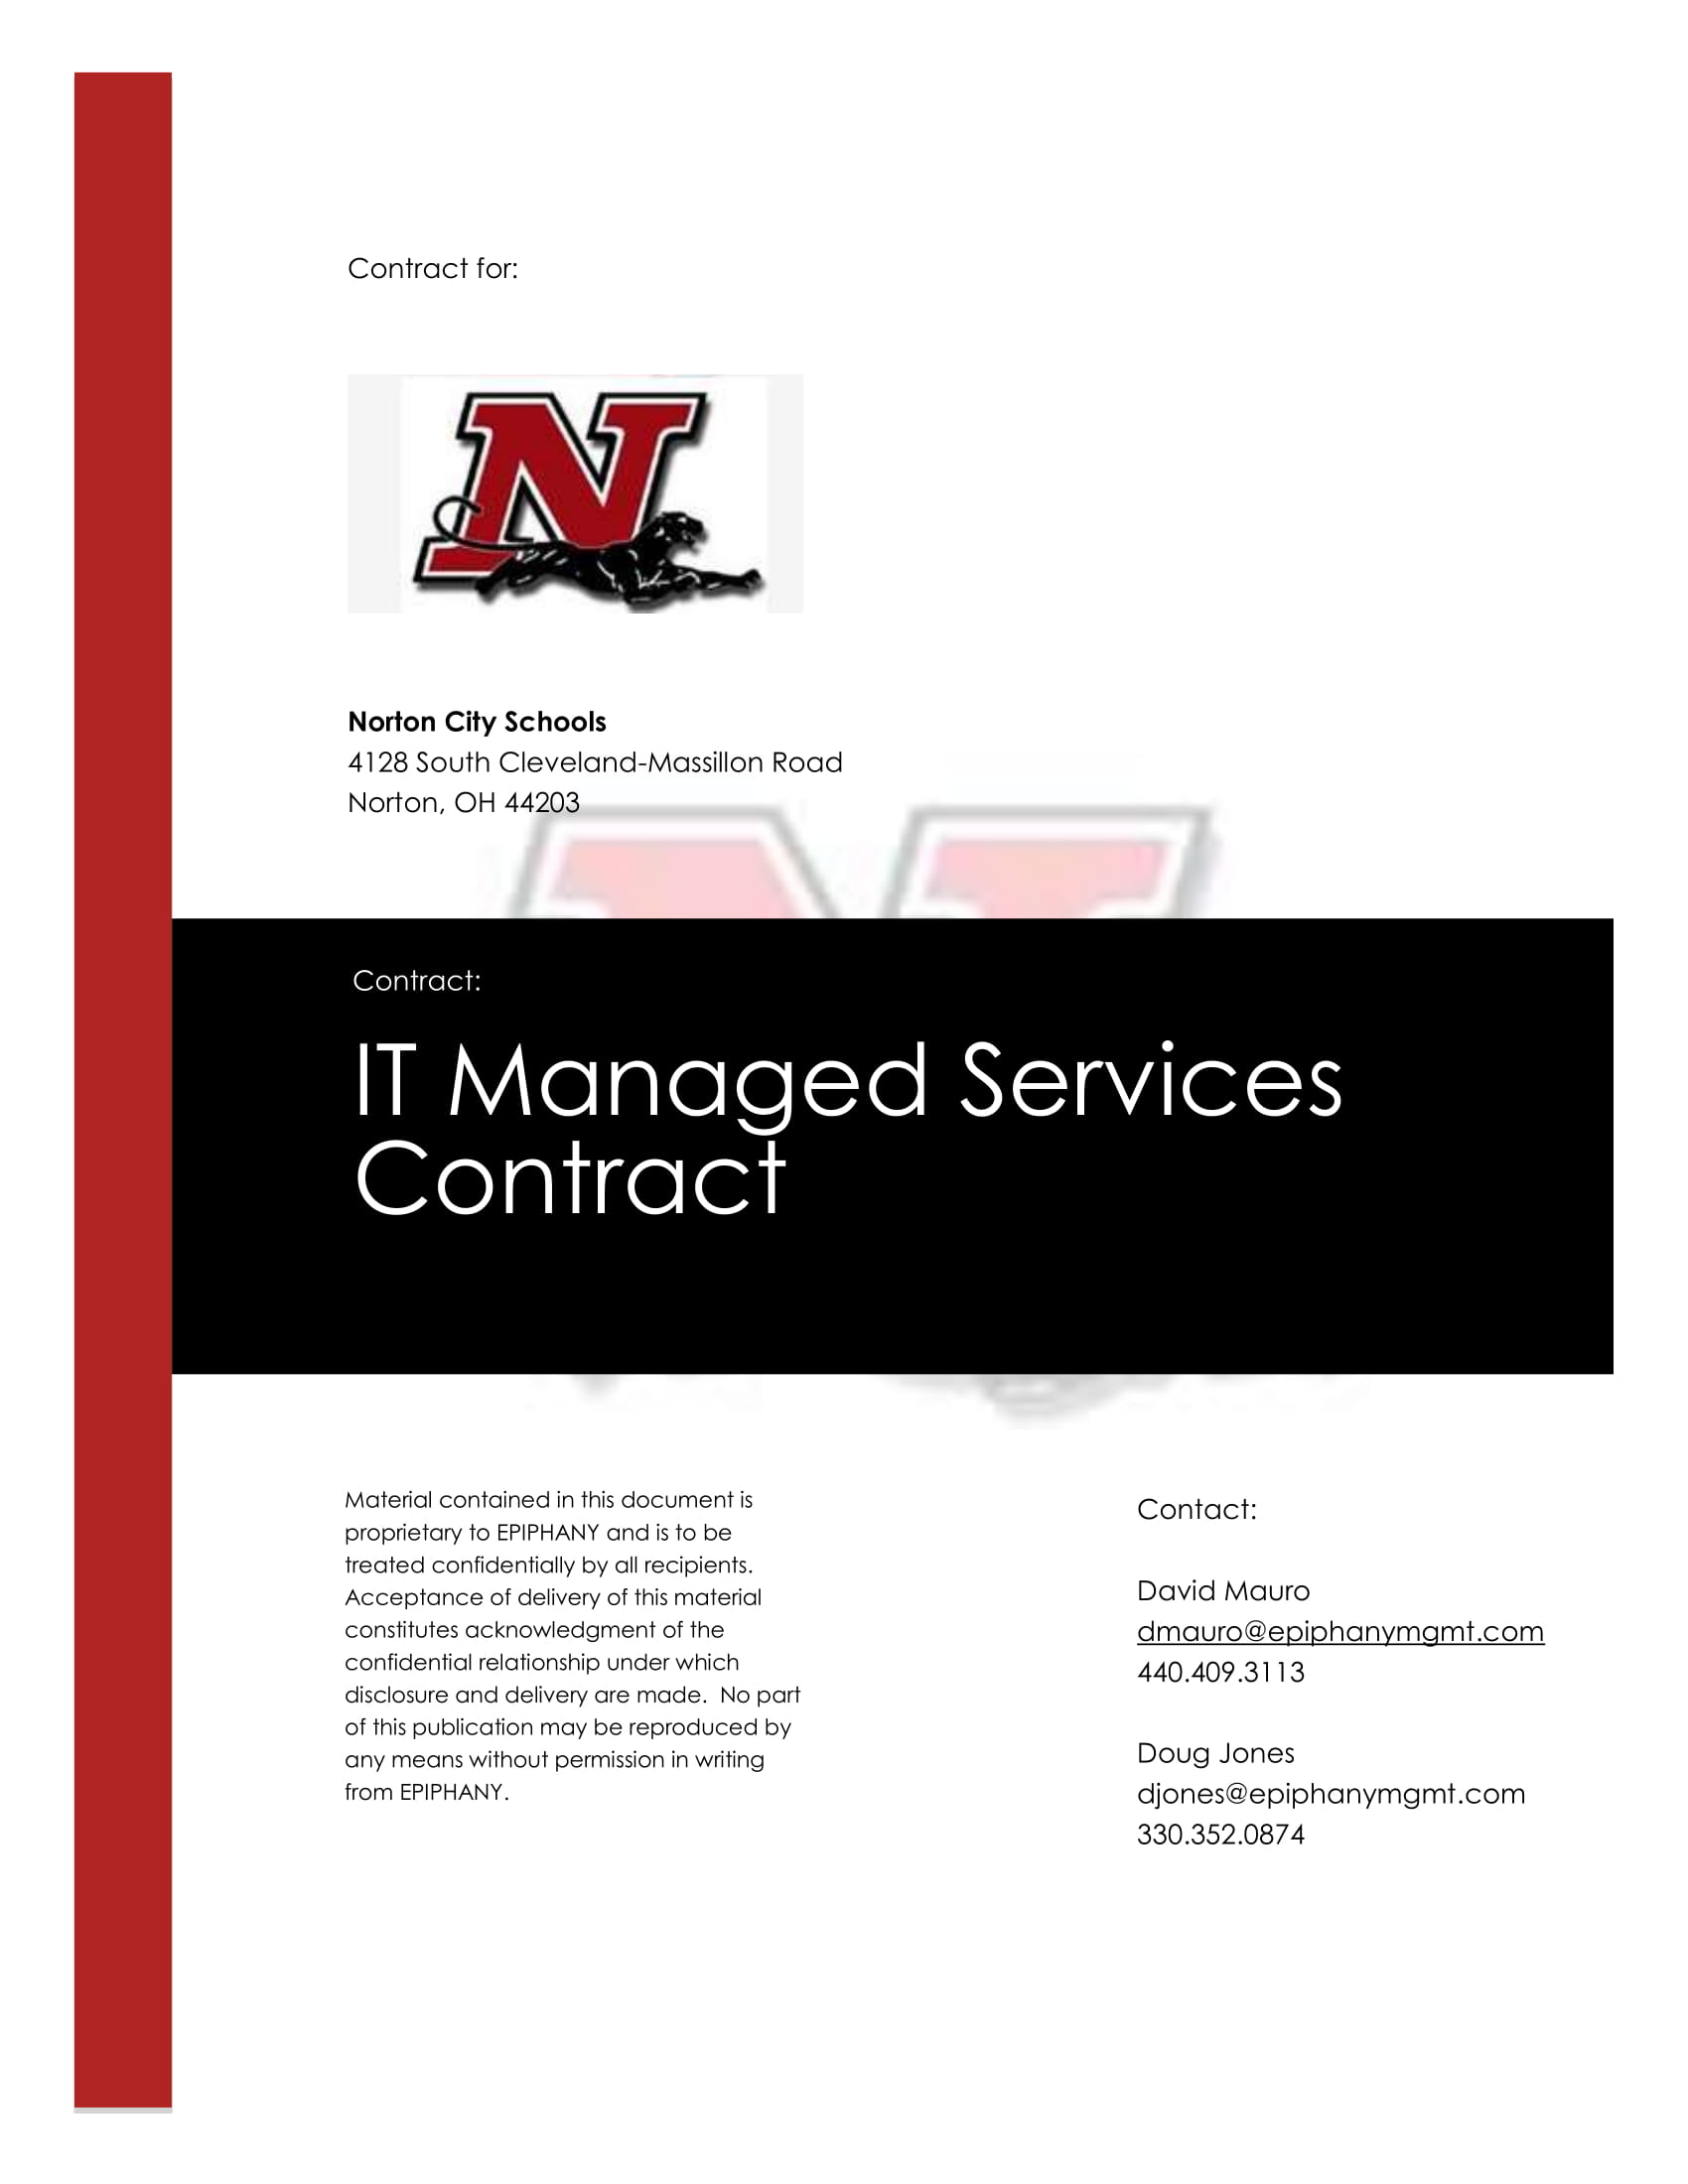 it managed services agreement contract template example 1